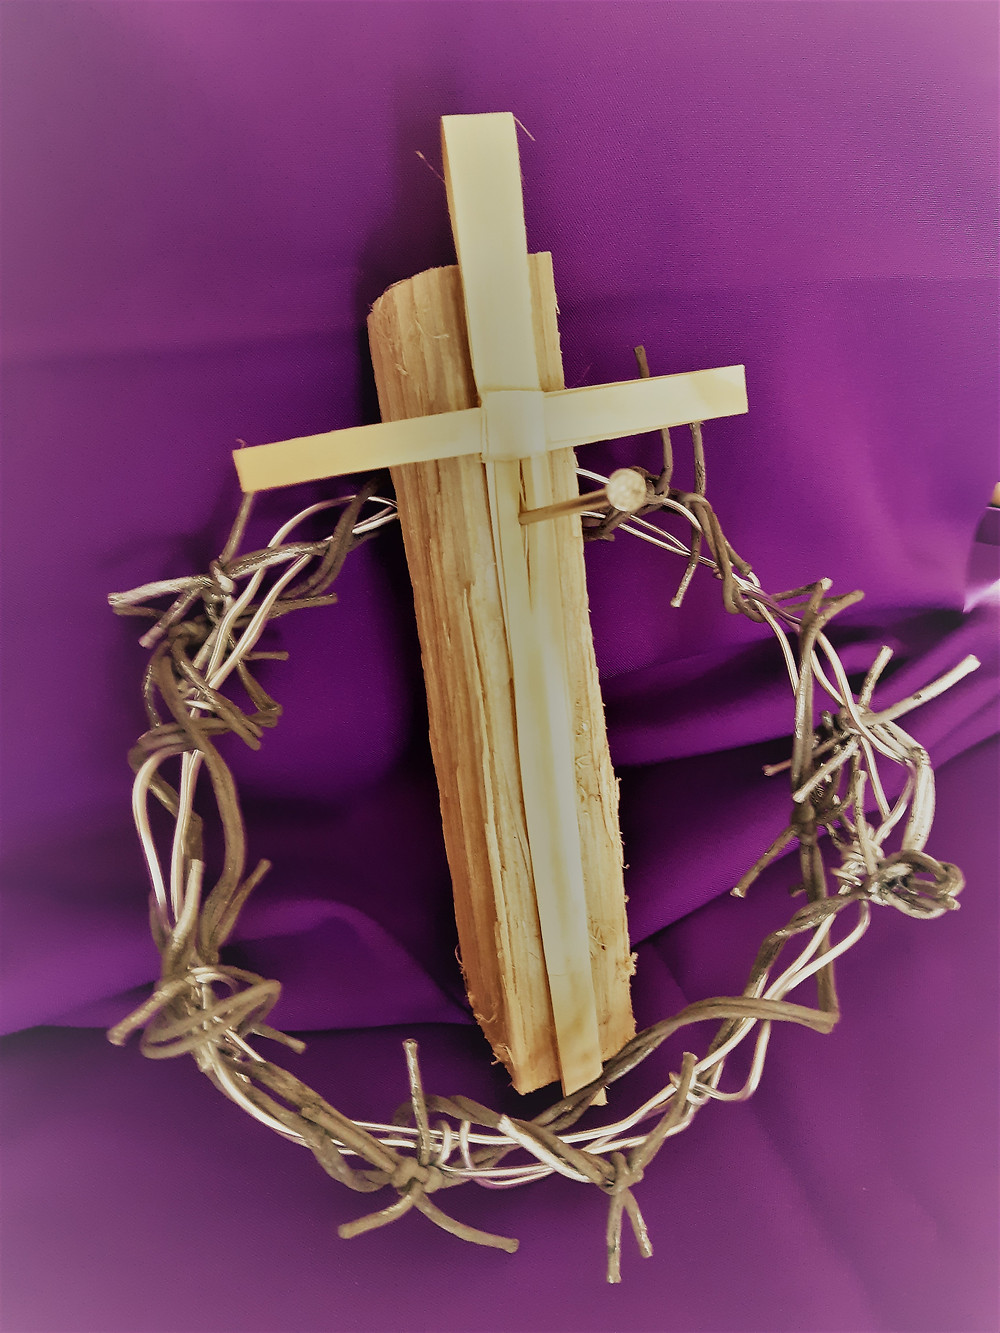 Palm cross with crown of thorns, nail and piece of wood